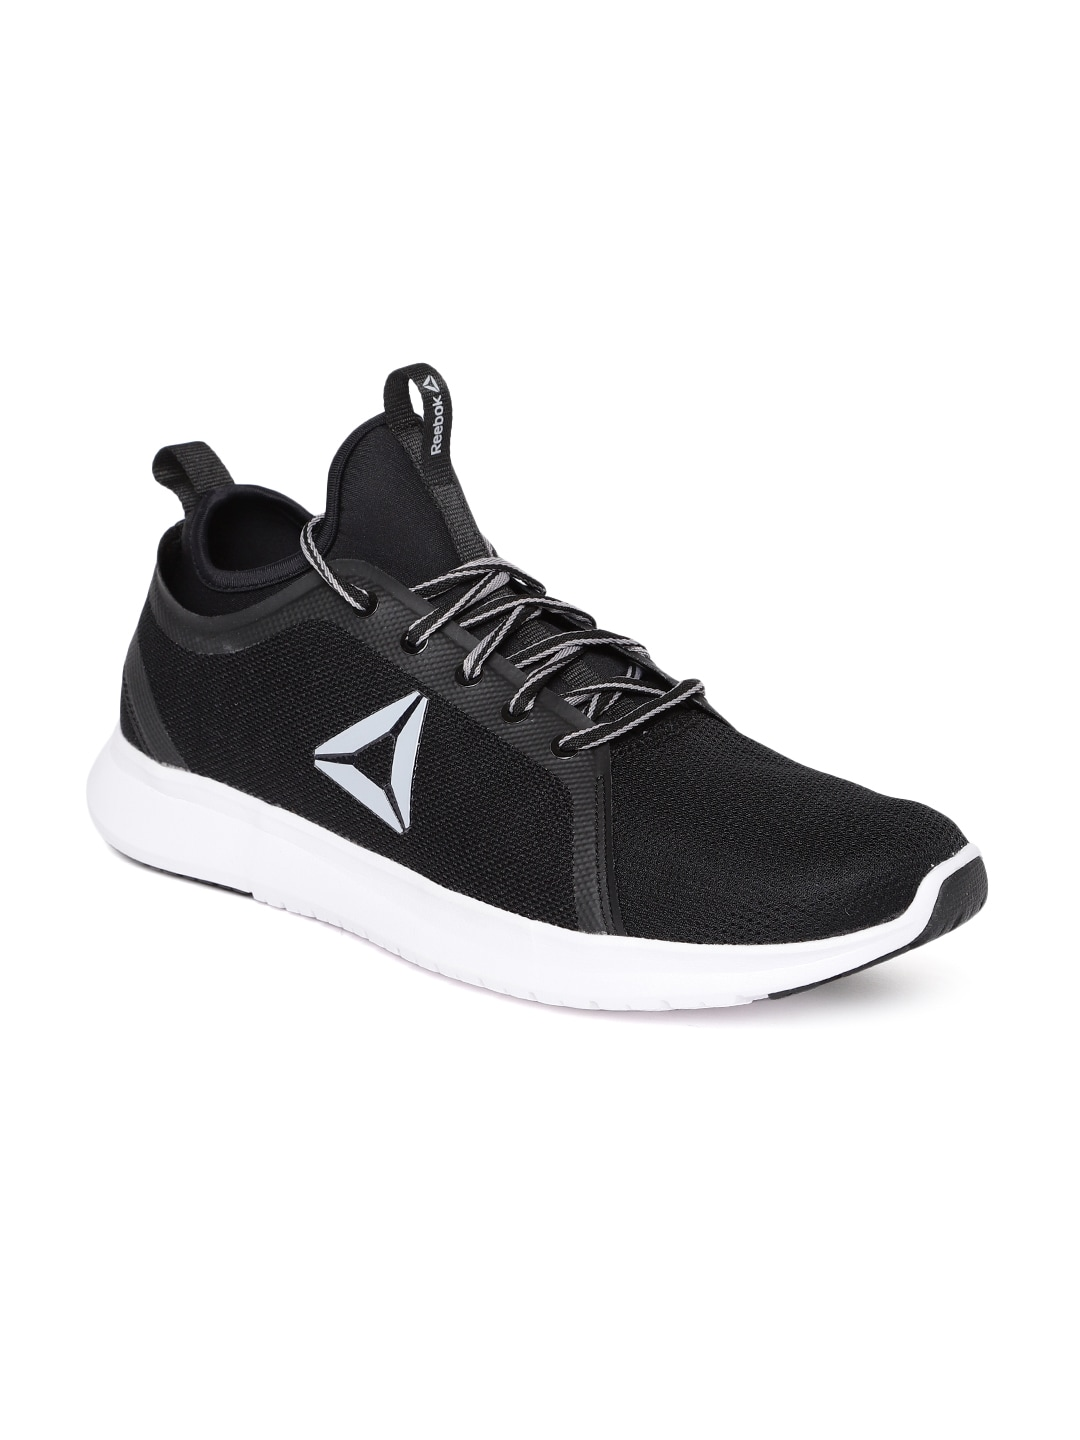 2a51c655fb928 Reebok Shoes - Buy Reebok Shoes For Men   Women Online